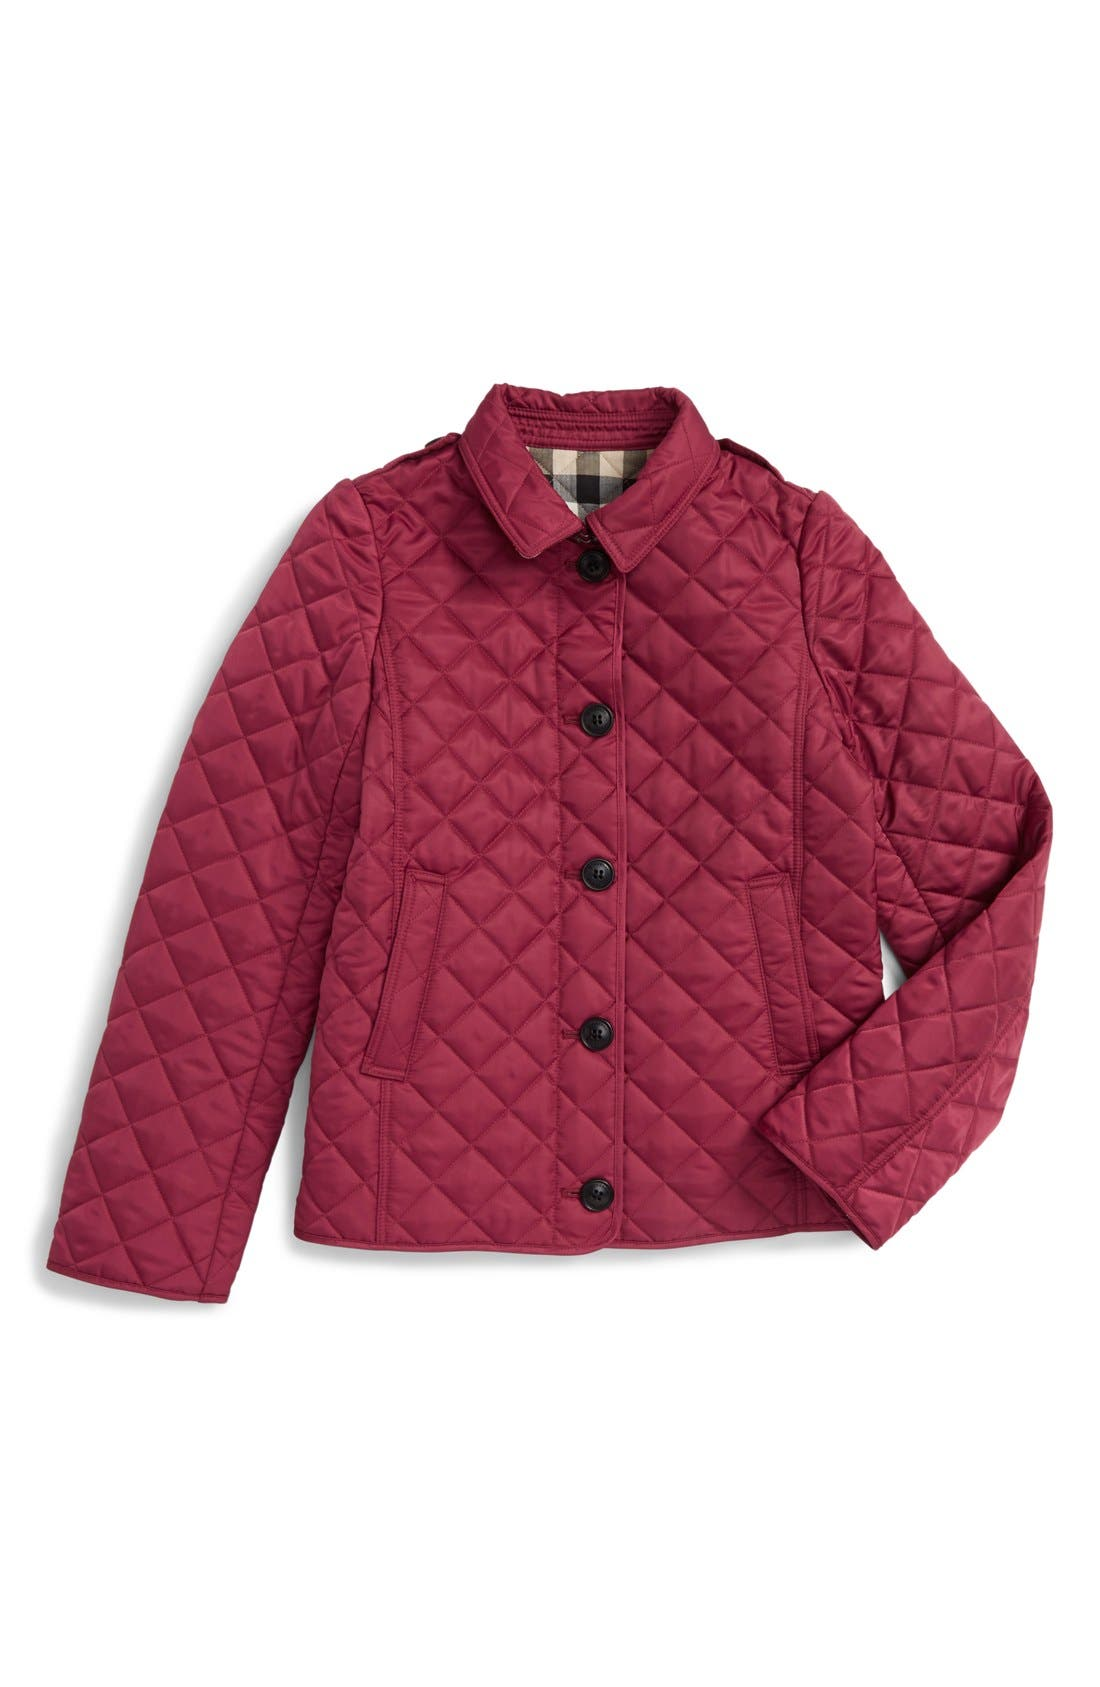 Burberry 'Mini Ashurst' Quilted Jacket (Big Girls & Little Girls)